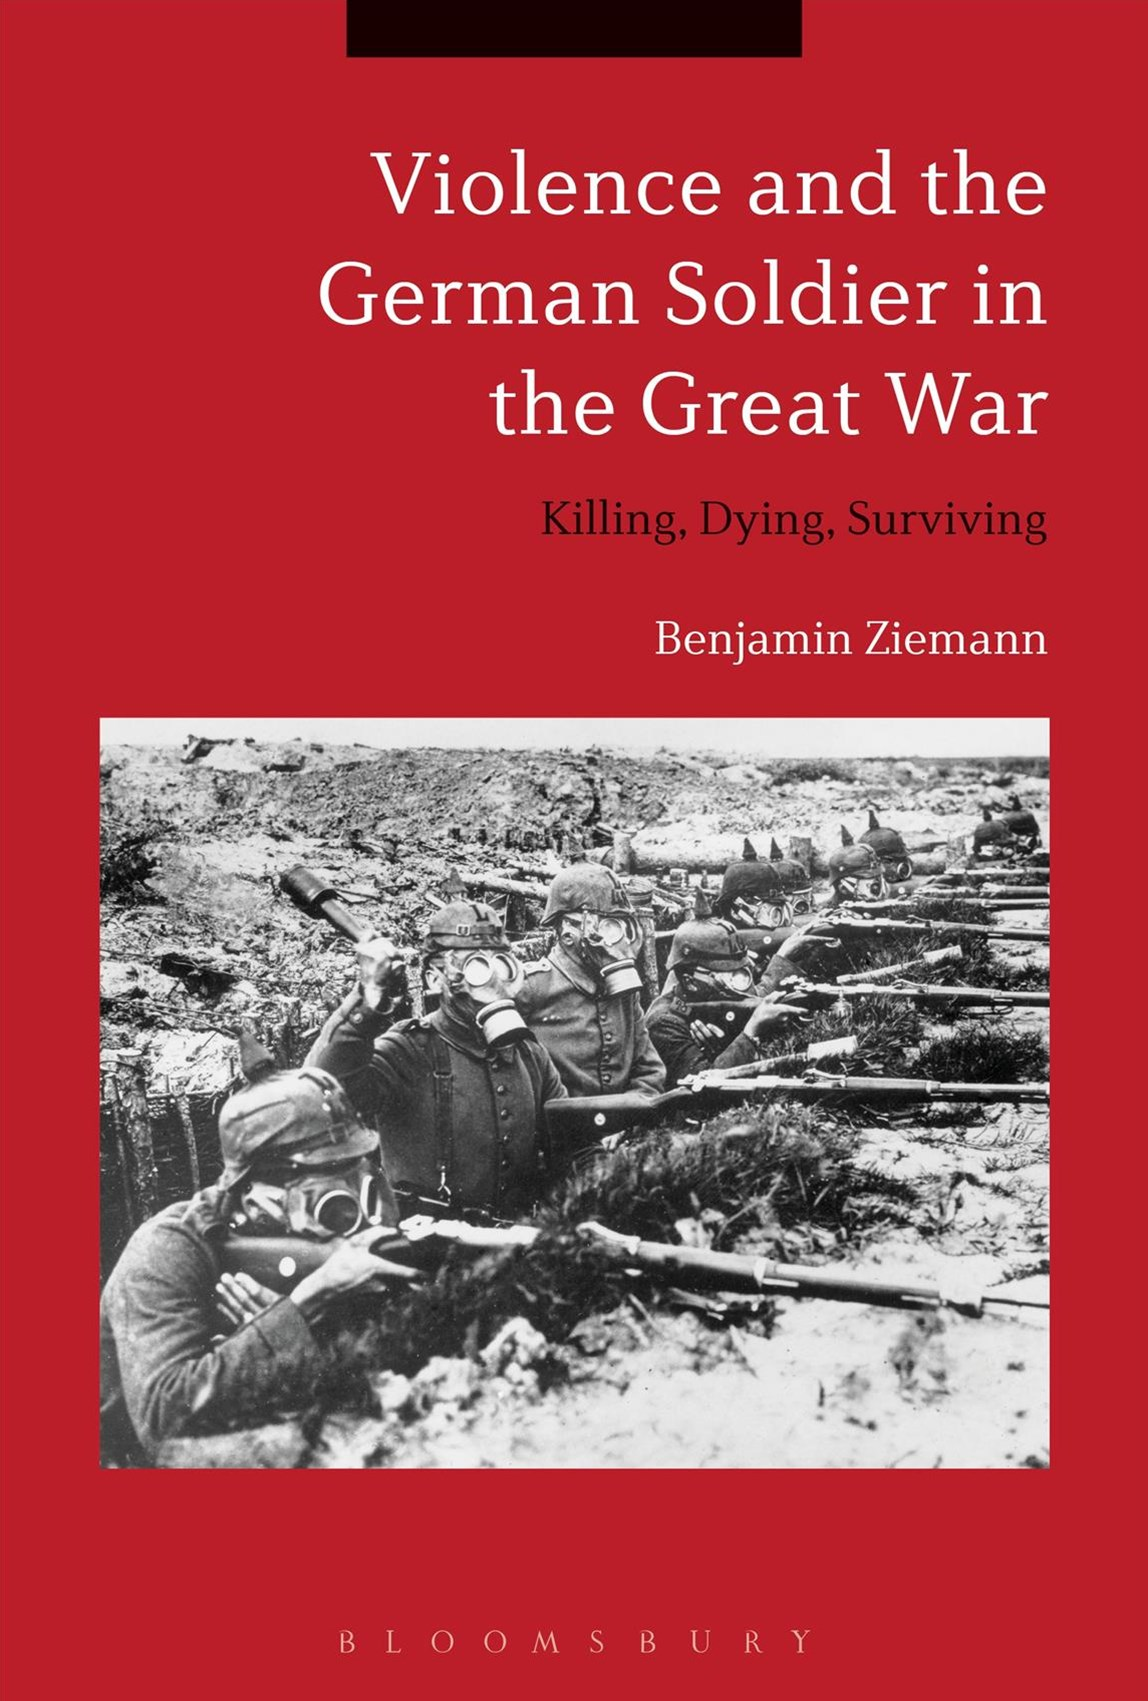 Violence and the German Soldier in the Great War